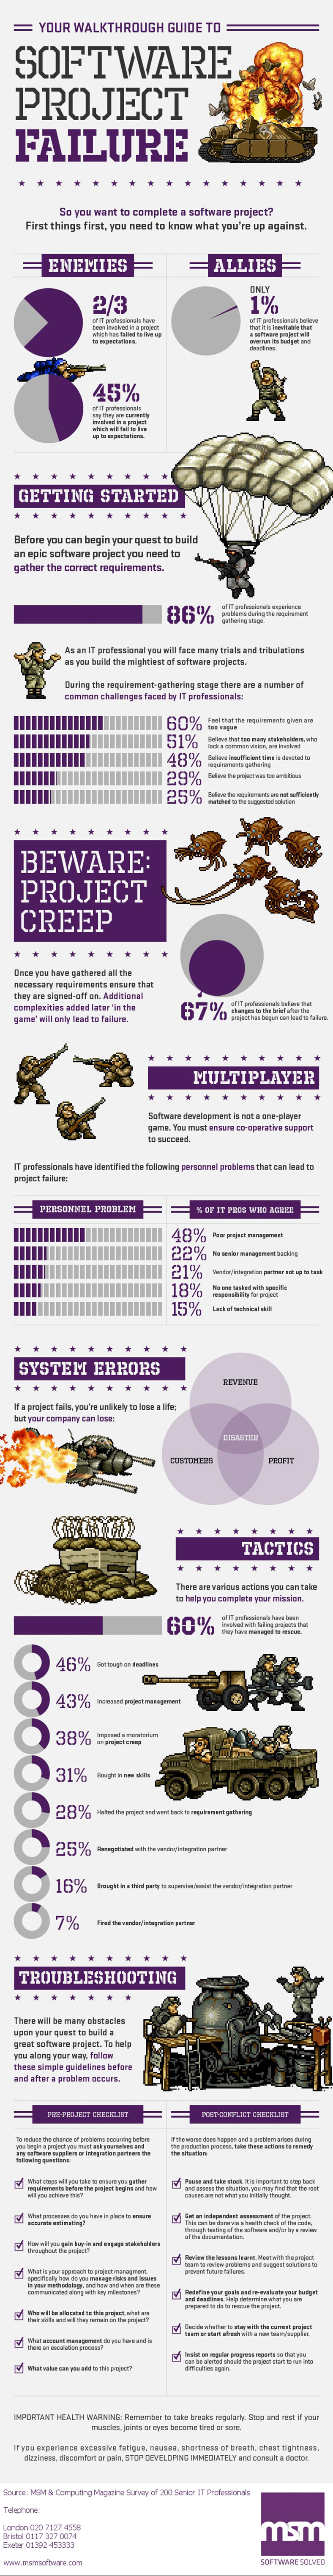 Software Project Failure Report-Infographic